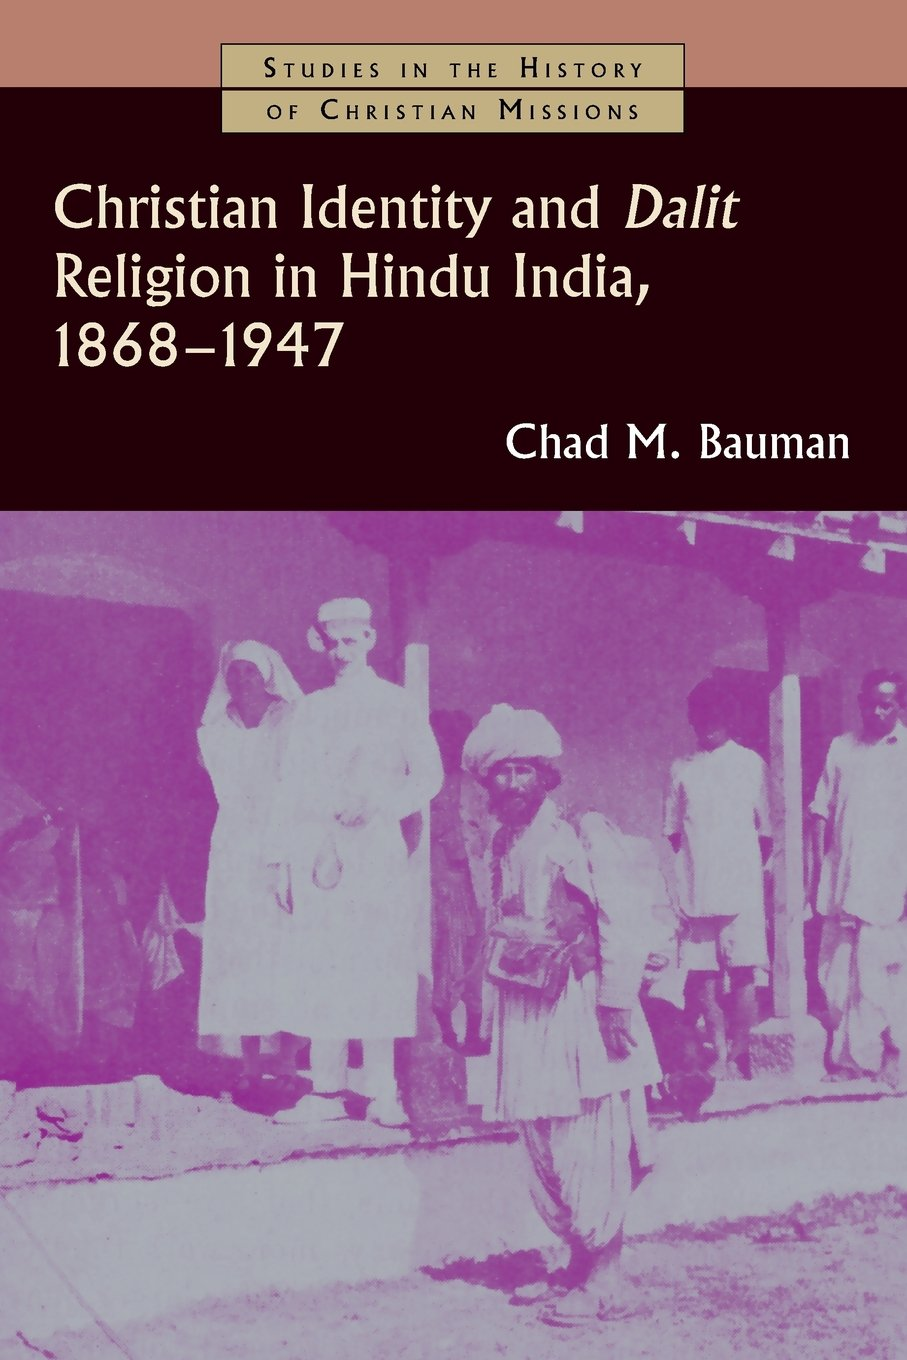 Christian Identity and Dalit Religion in Hindu India, 1868-1947 (Studies in the History of Christian Missions)